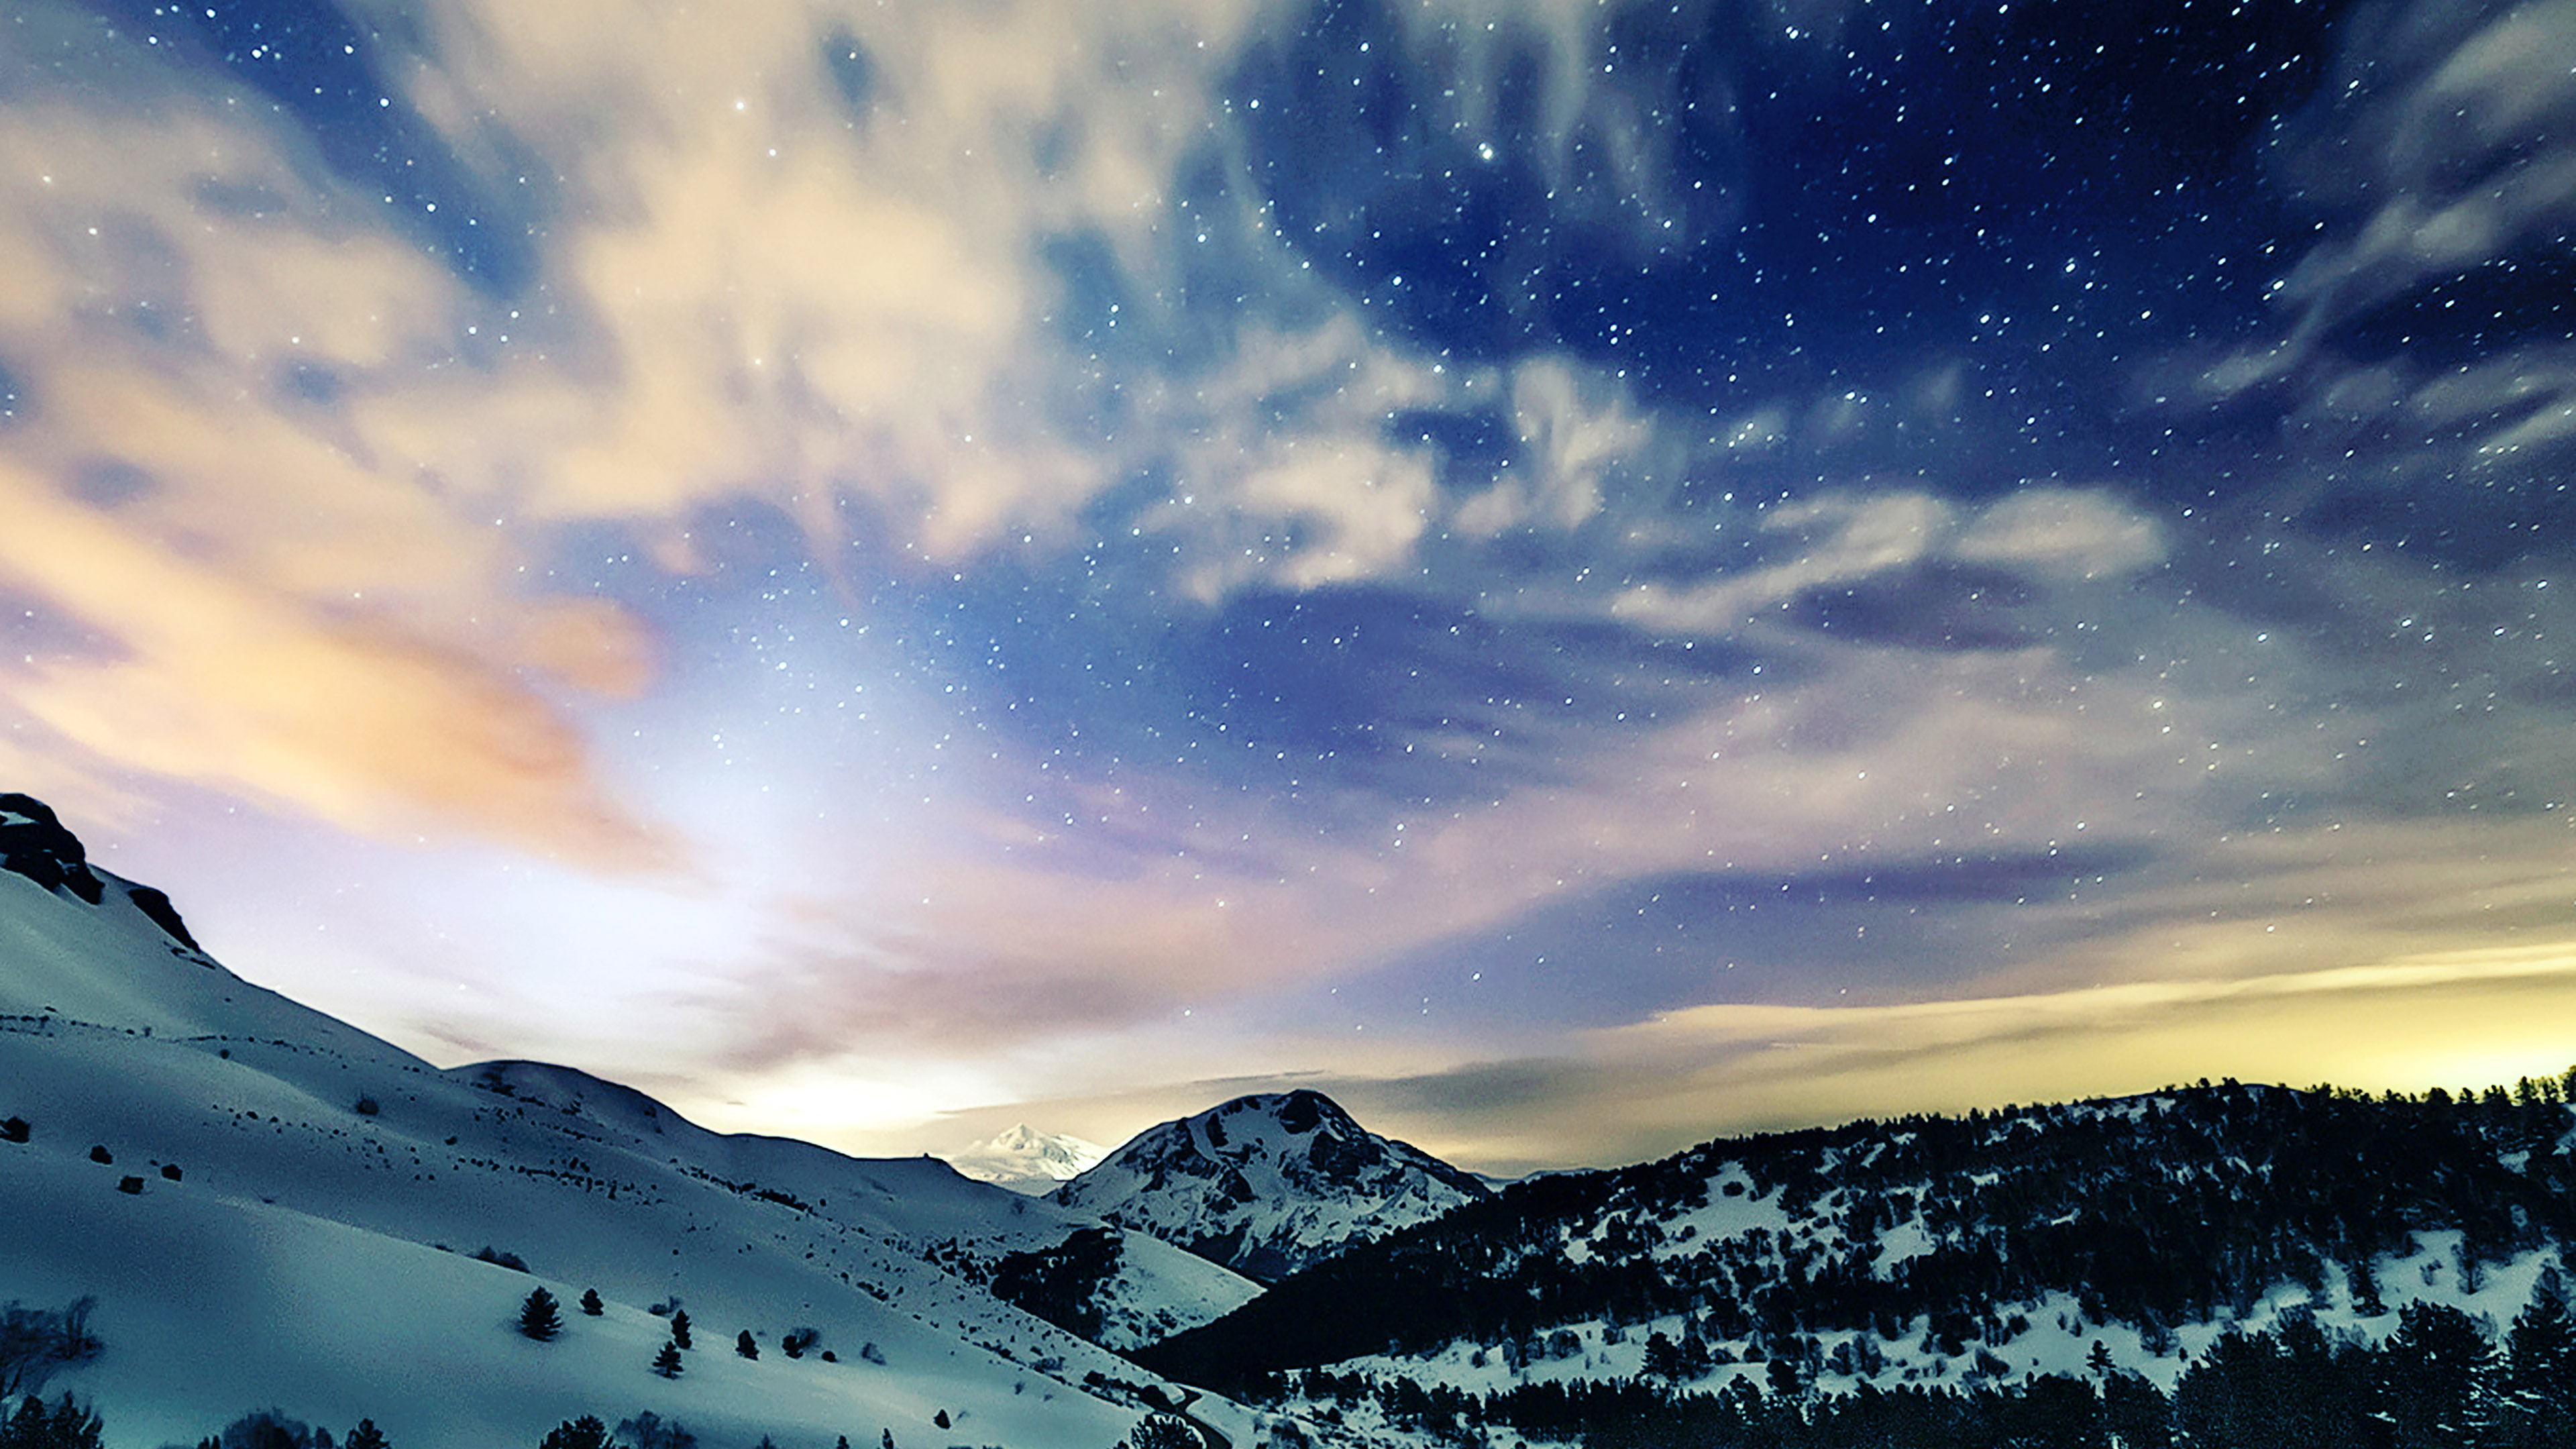 Wallpaper Desktop Fall Mk79 Aurora Star Sky Snow Night Mountain Winter Nature